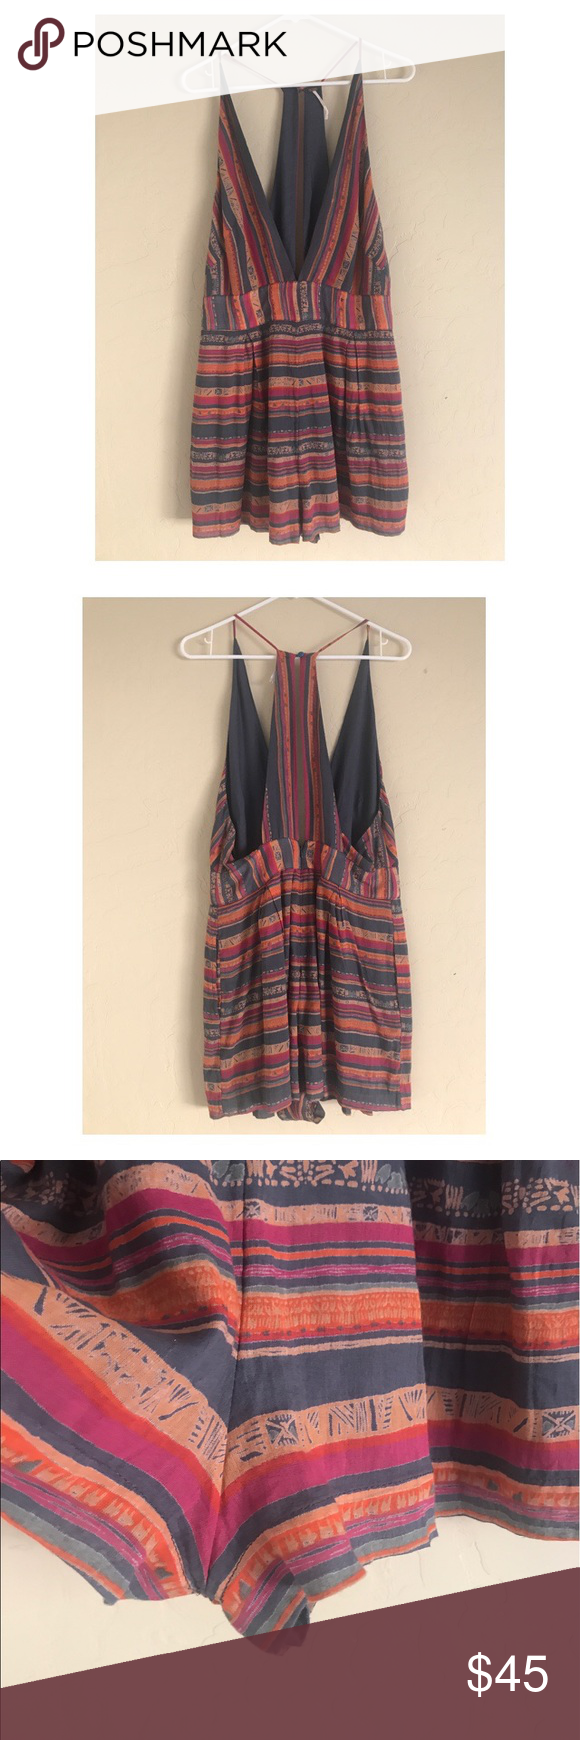 """NWOT Free People Romper NWOT free people Romper, pockets on both sides. Size 12. Length 35"""" Free People Other"""